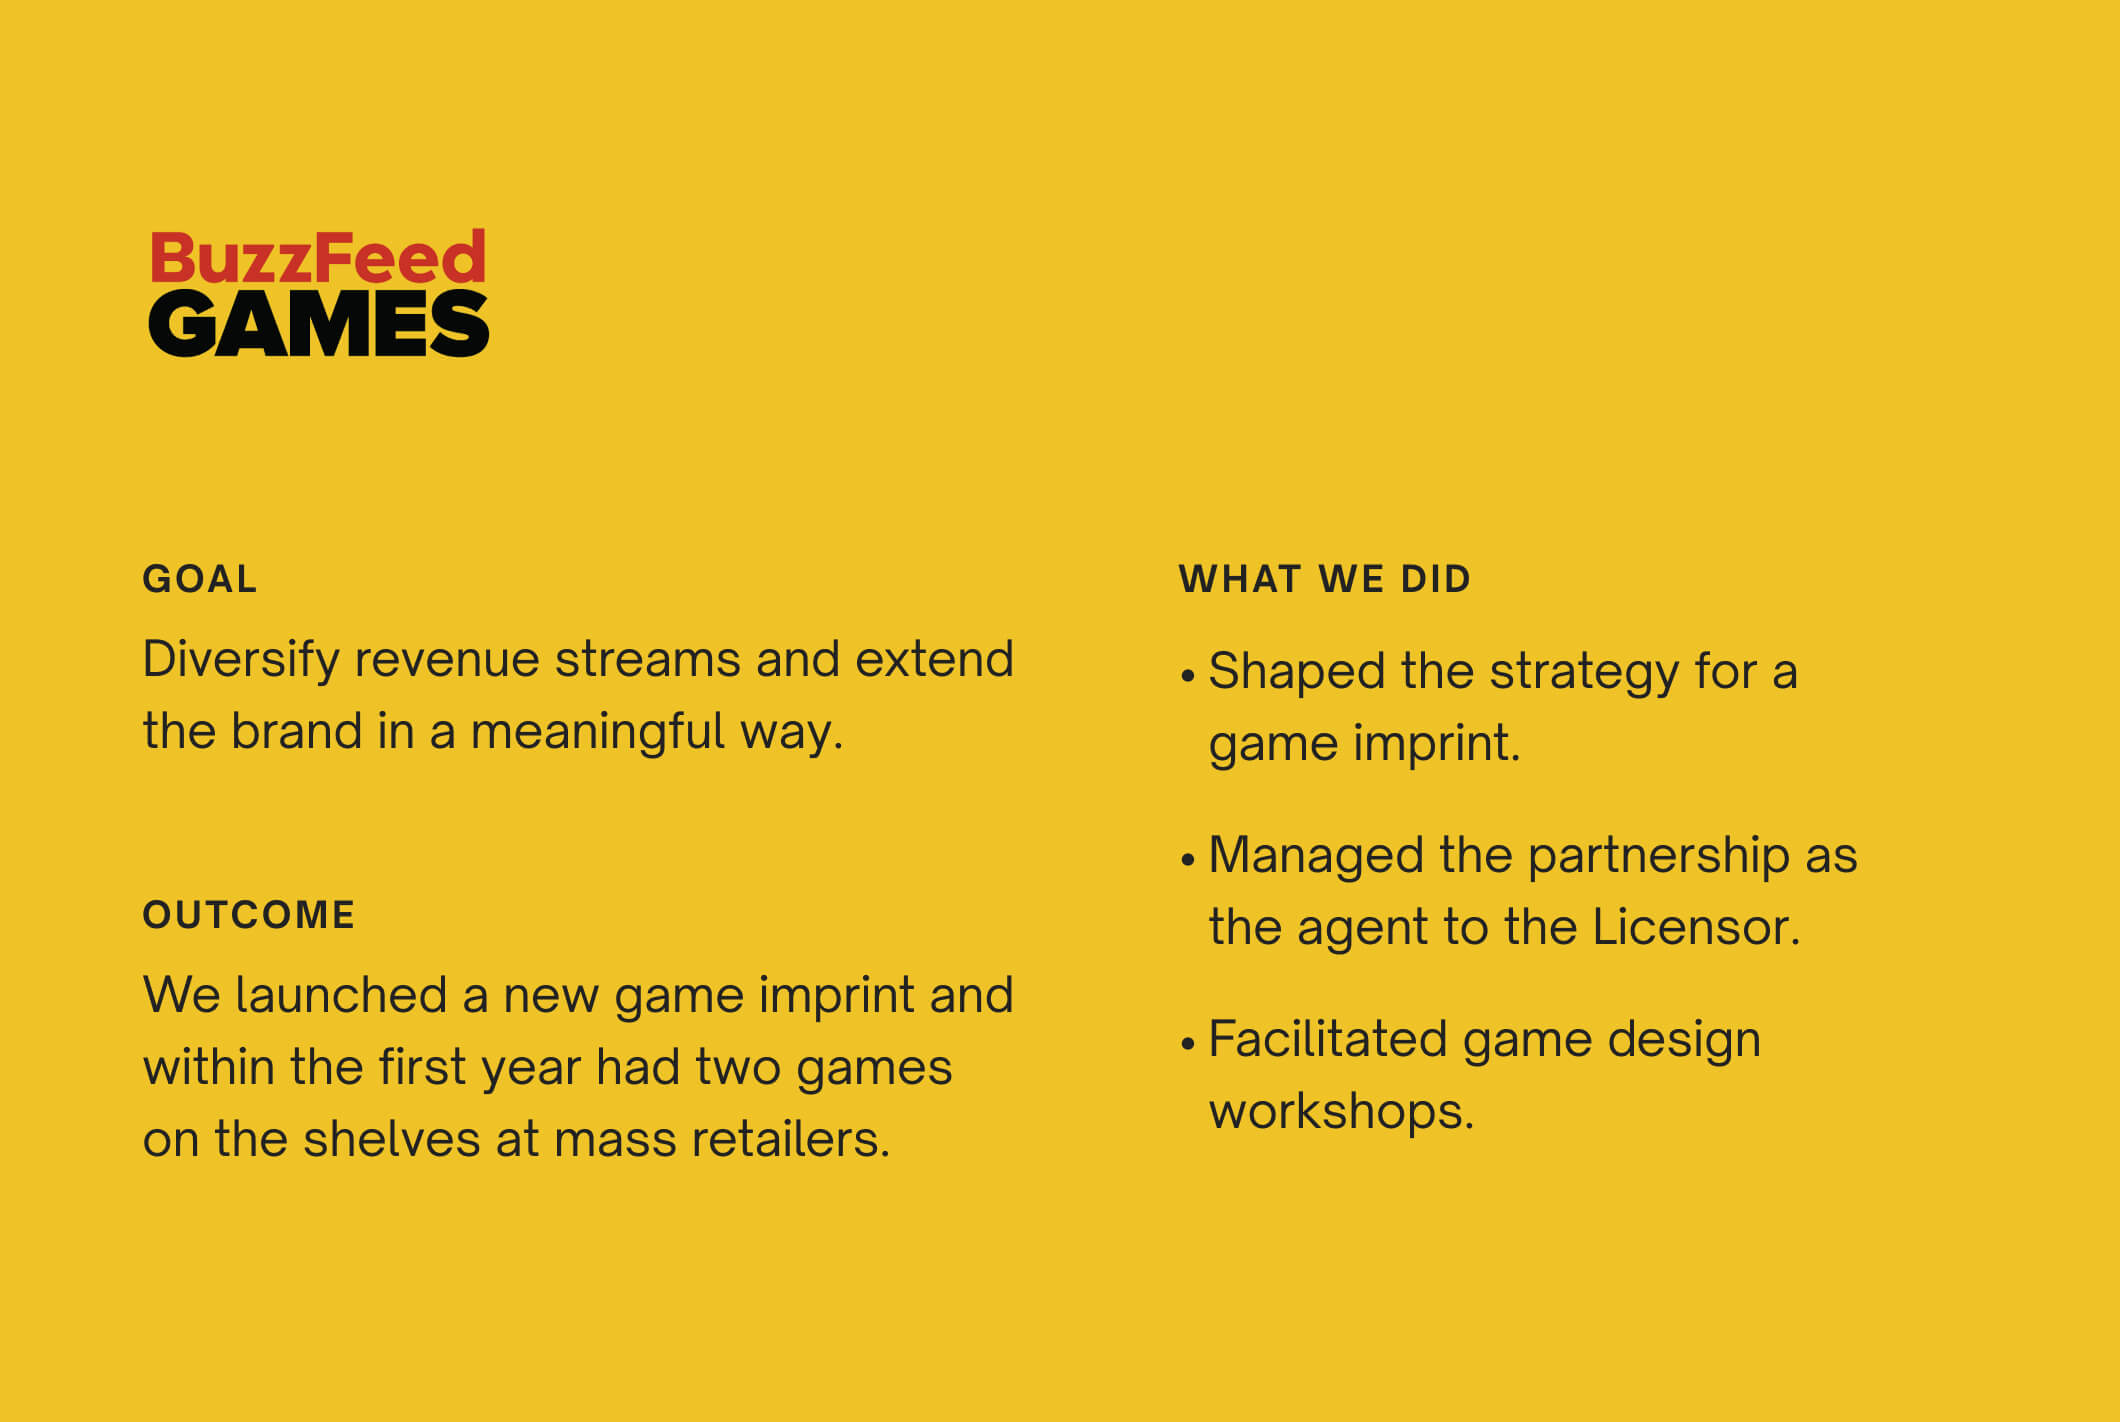 For BuzzFeed, Part and Sum helped diversify revenue streams by acting as a licensing agent and creating BuzzFeed Games